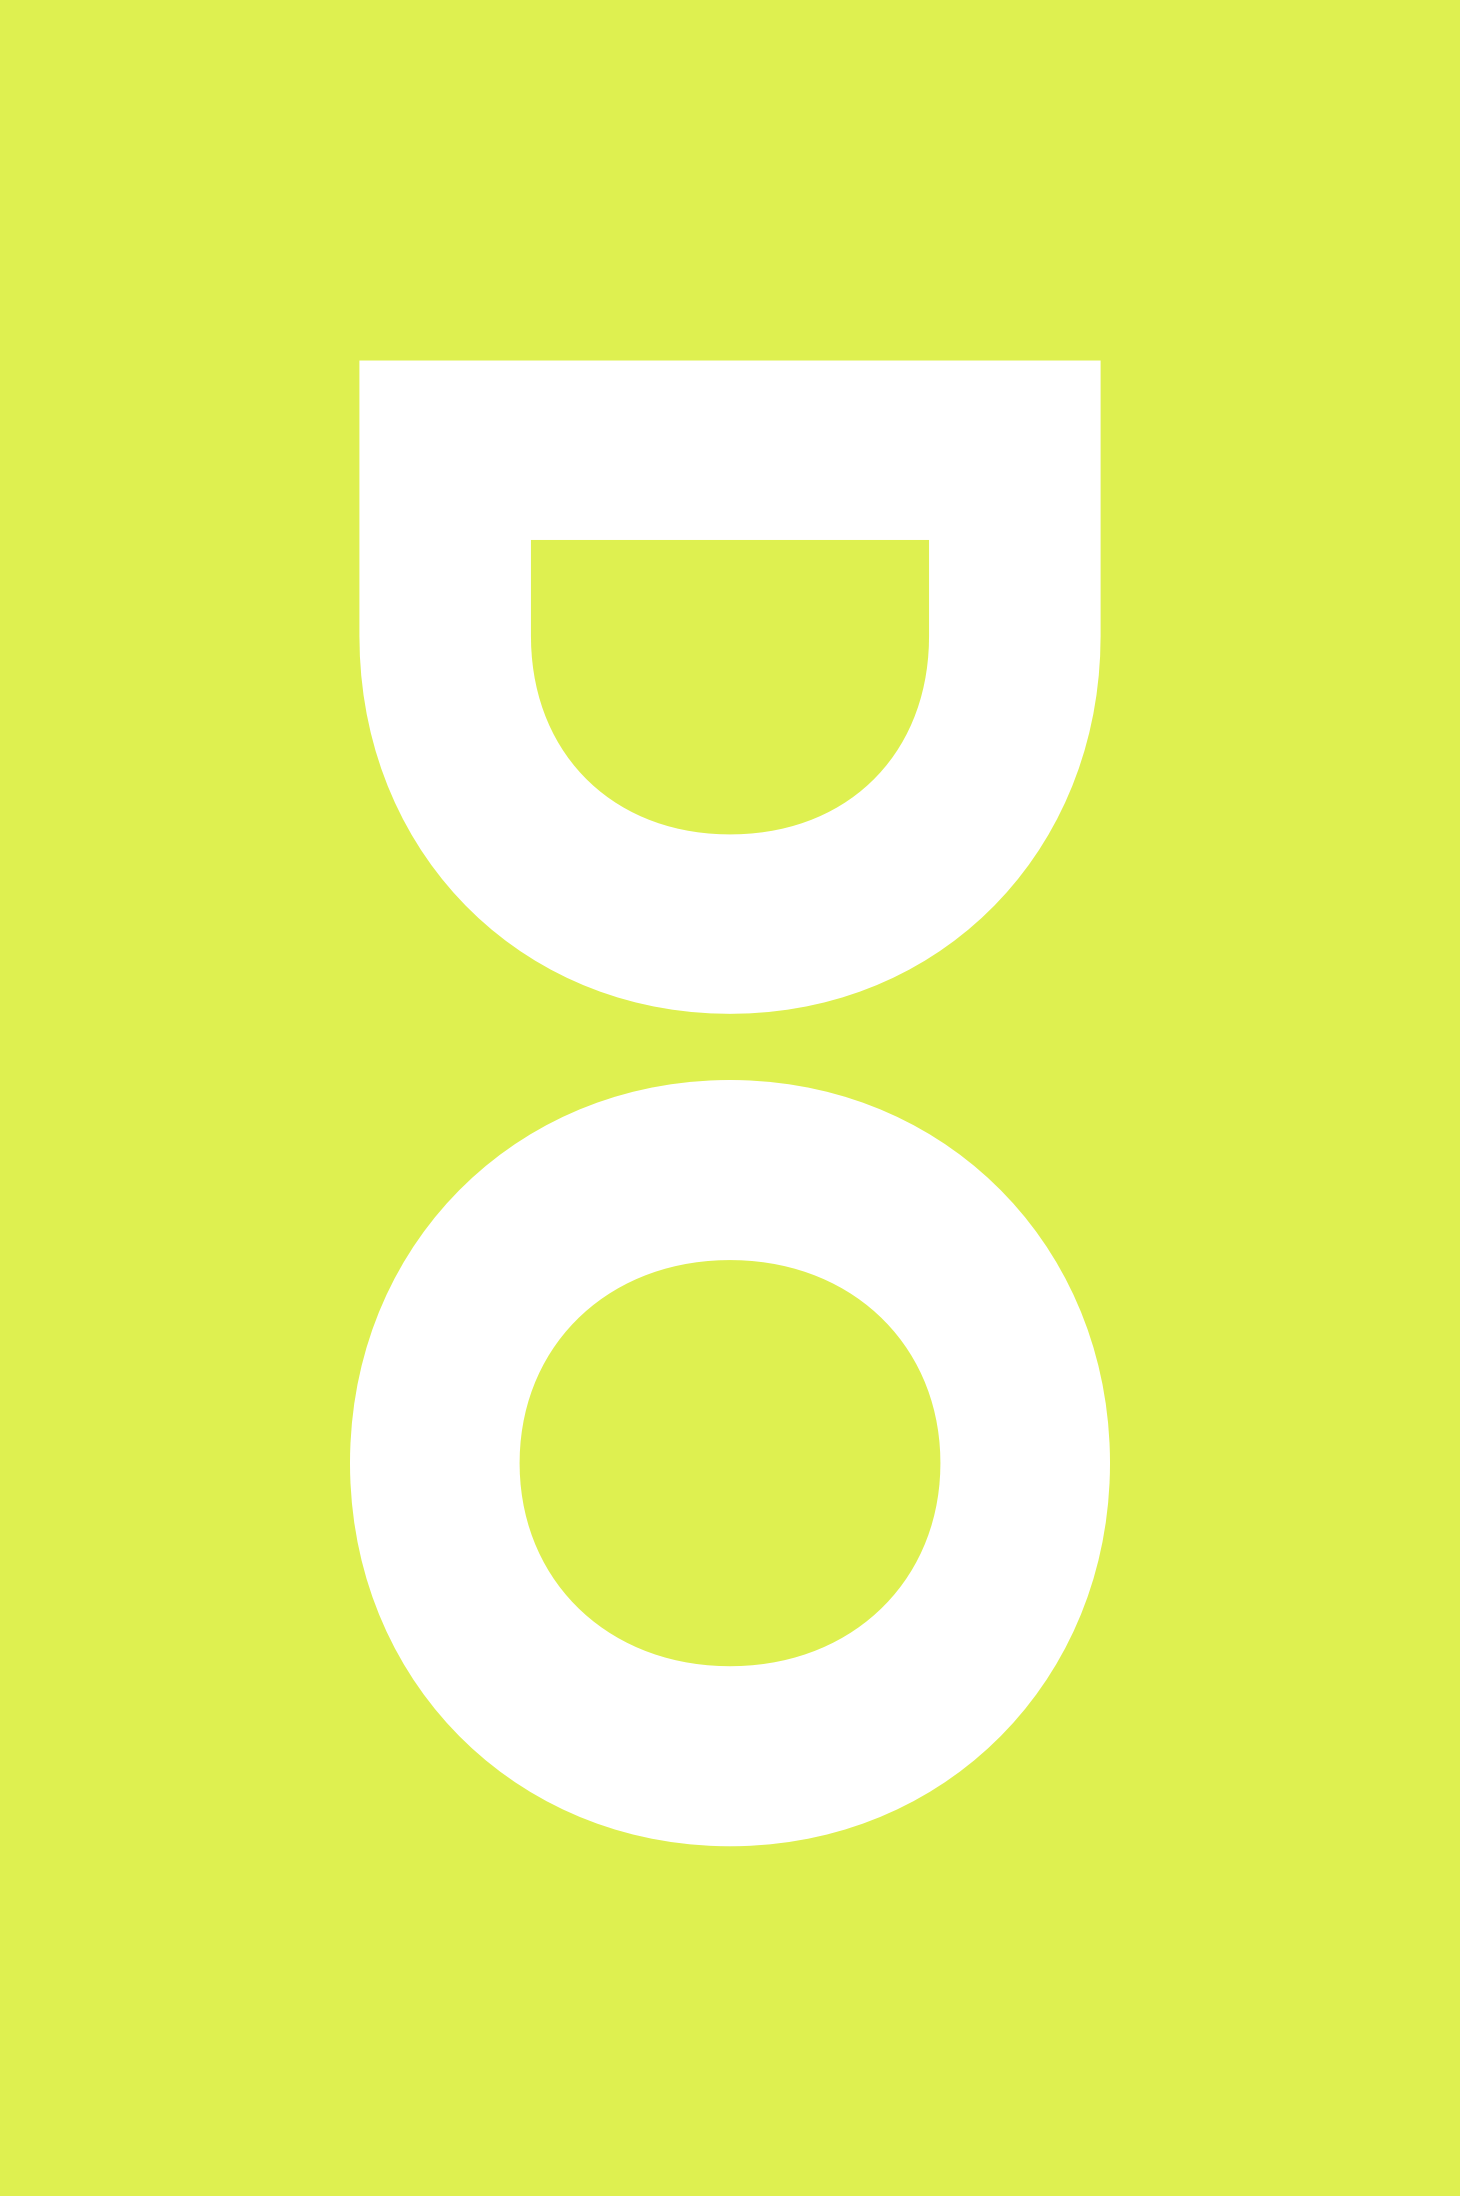 do_solid_yellow.png